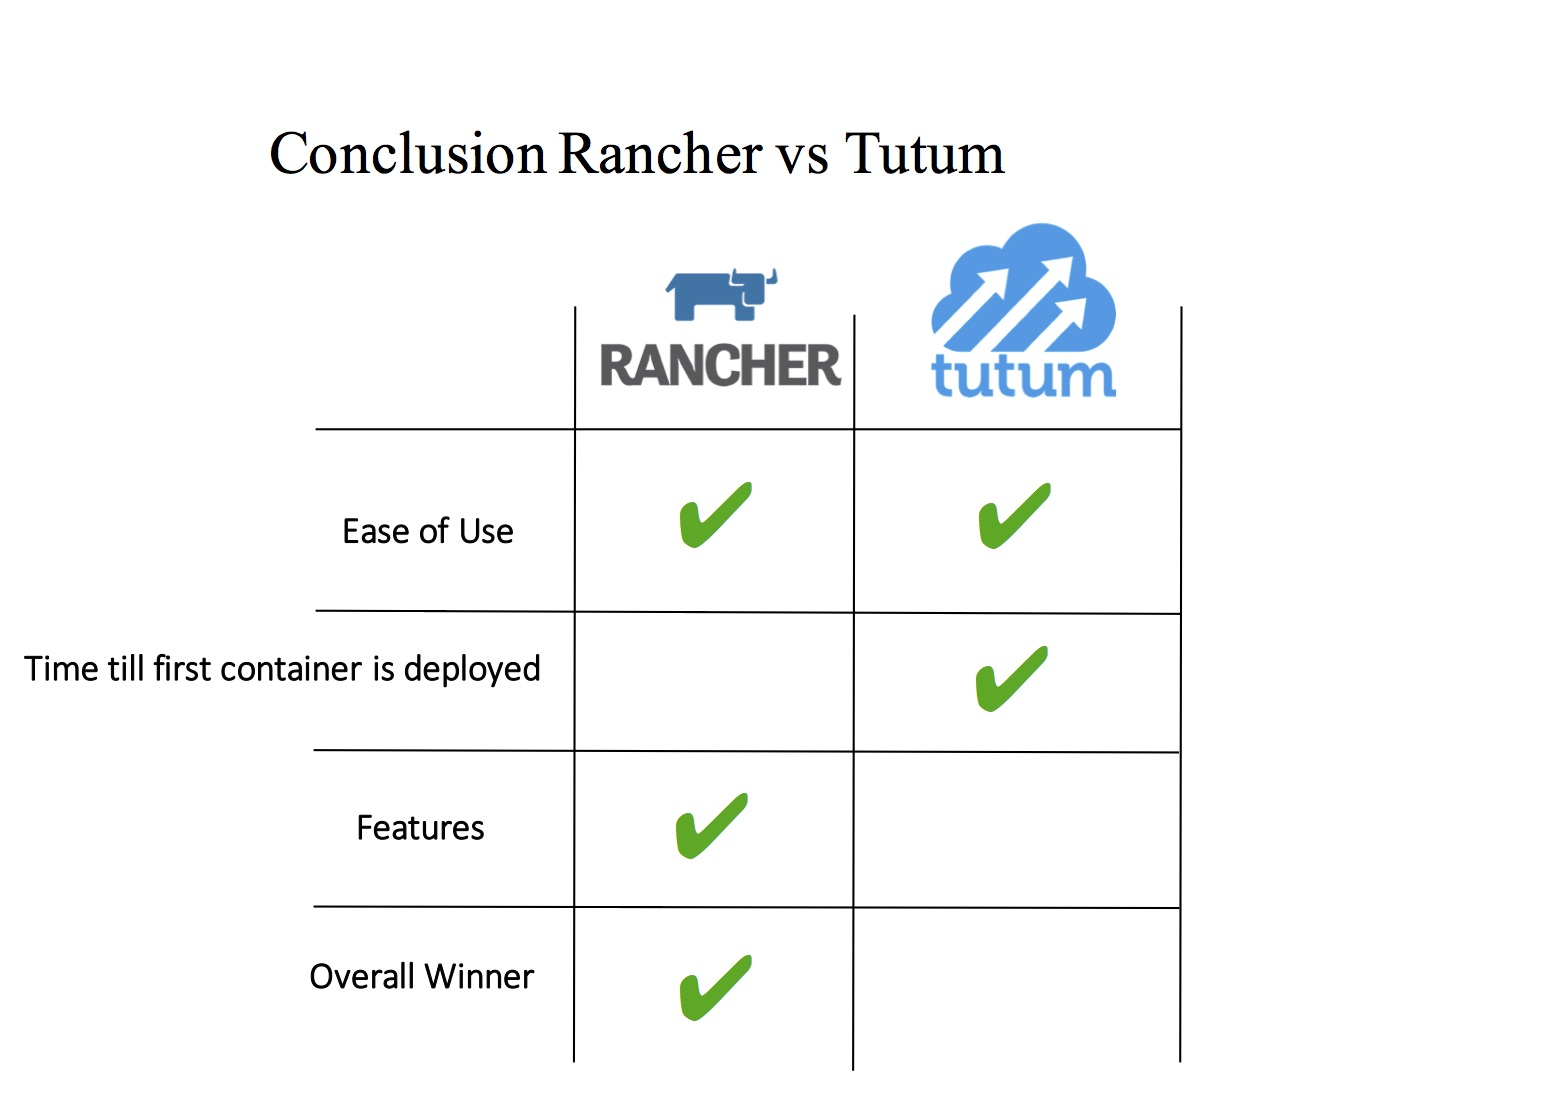 Rancher vs Tutum comparison